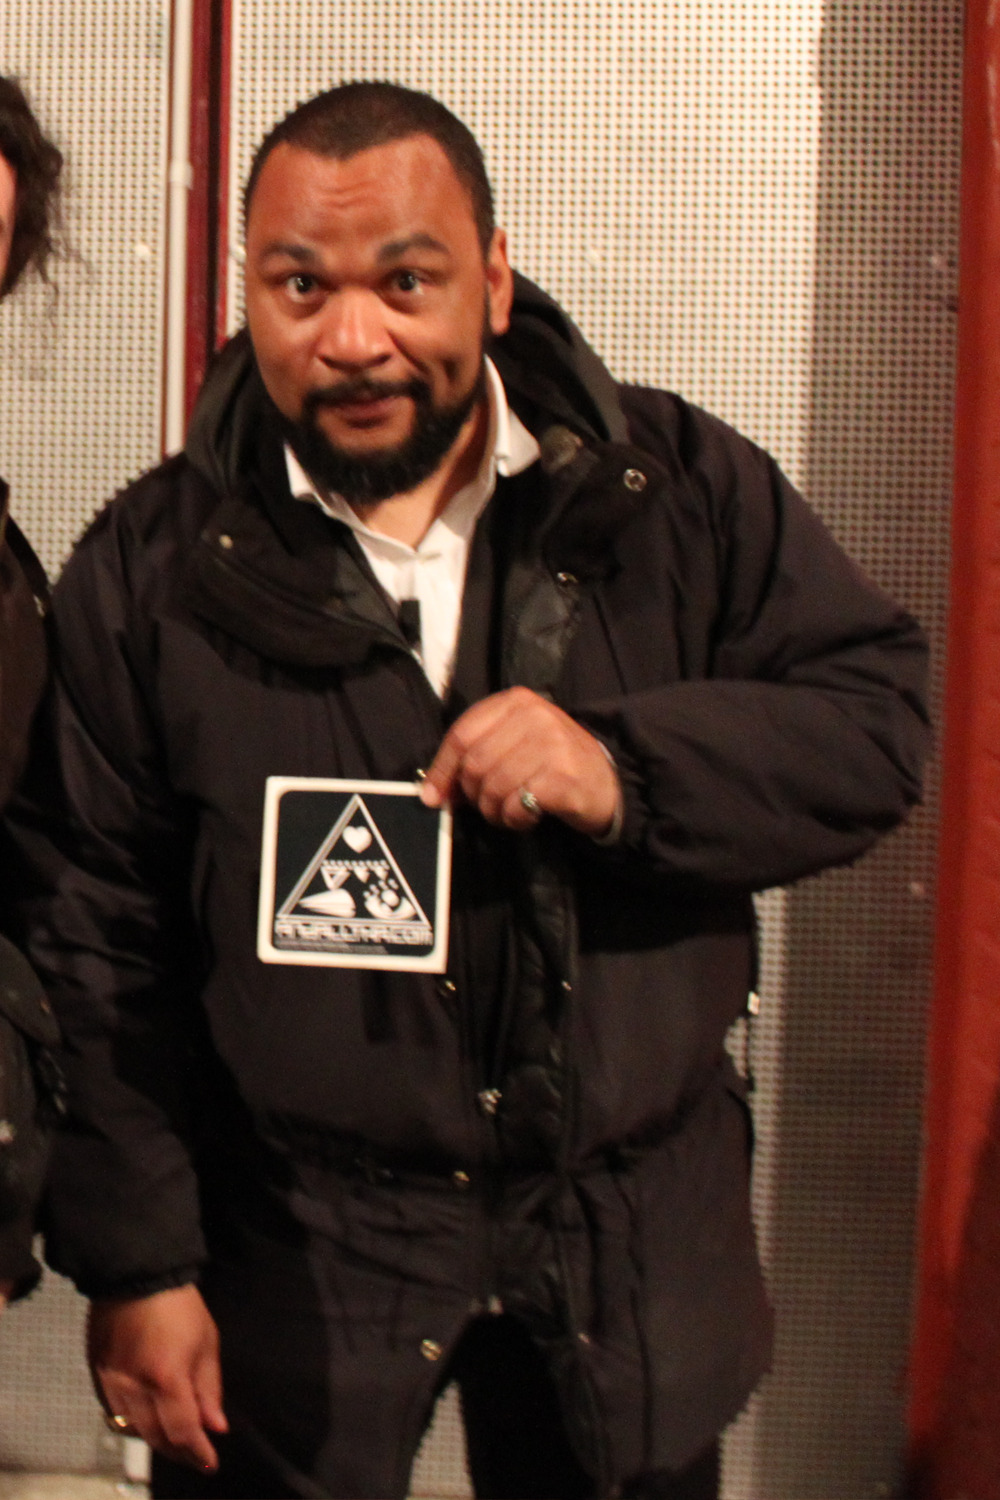 Dieudonné M'bala M'bala for Andalltha. © Thierry Jaspart. All rights reserved.http://www.thierryjaspart.com